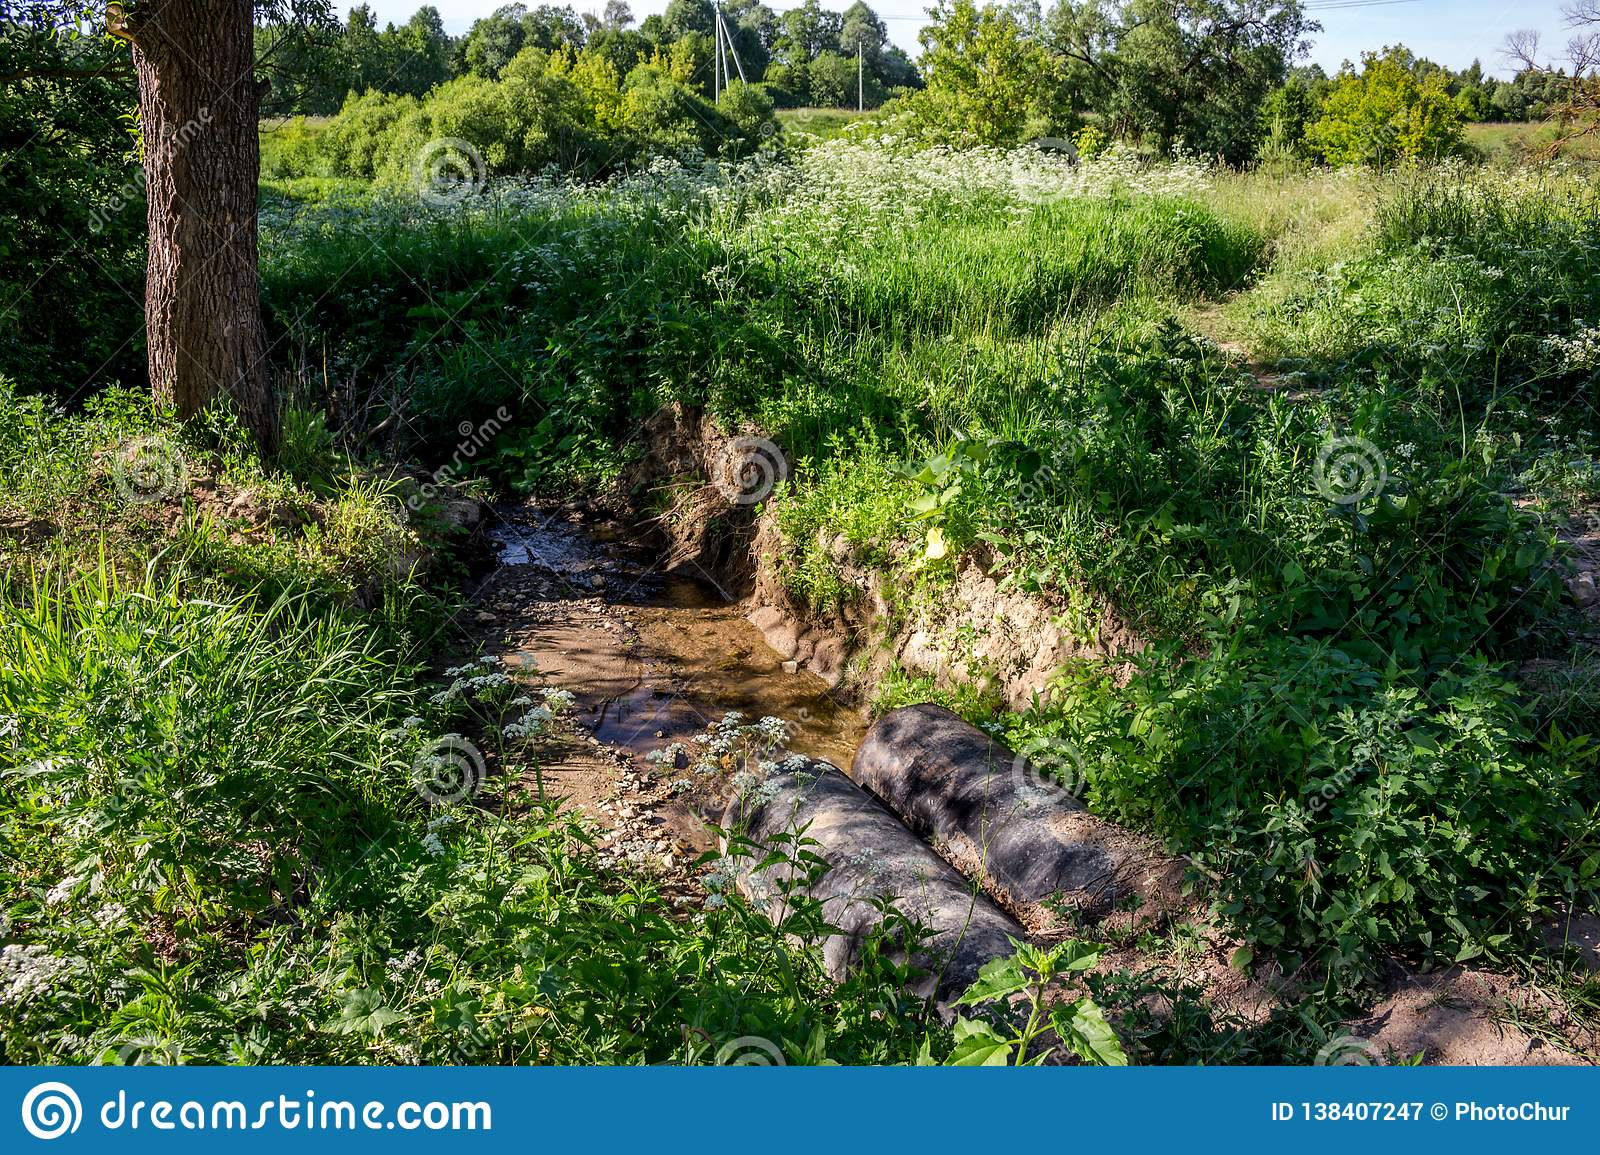 Water Flow Through Water Pipes In Nature Stock Image - Image